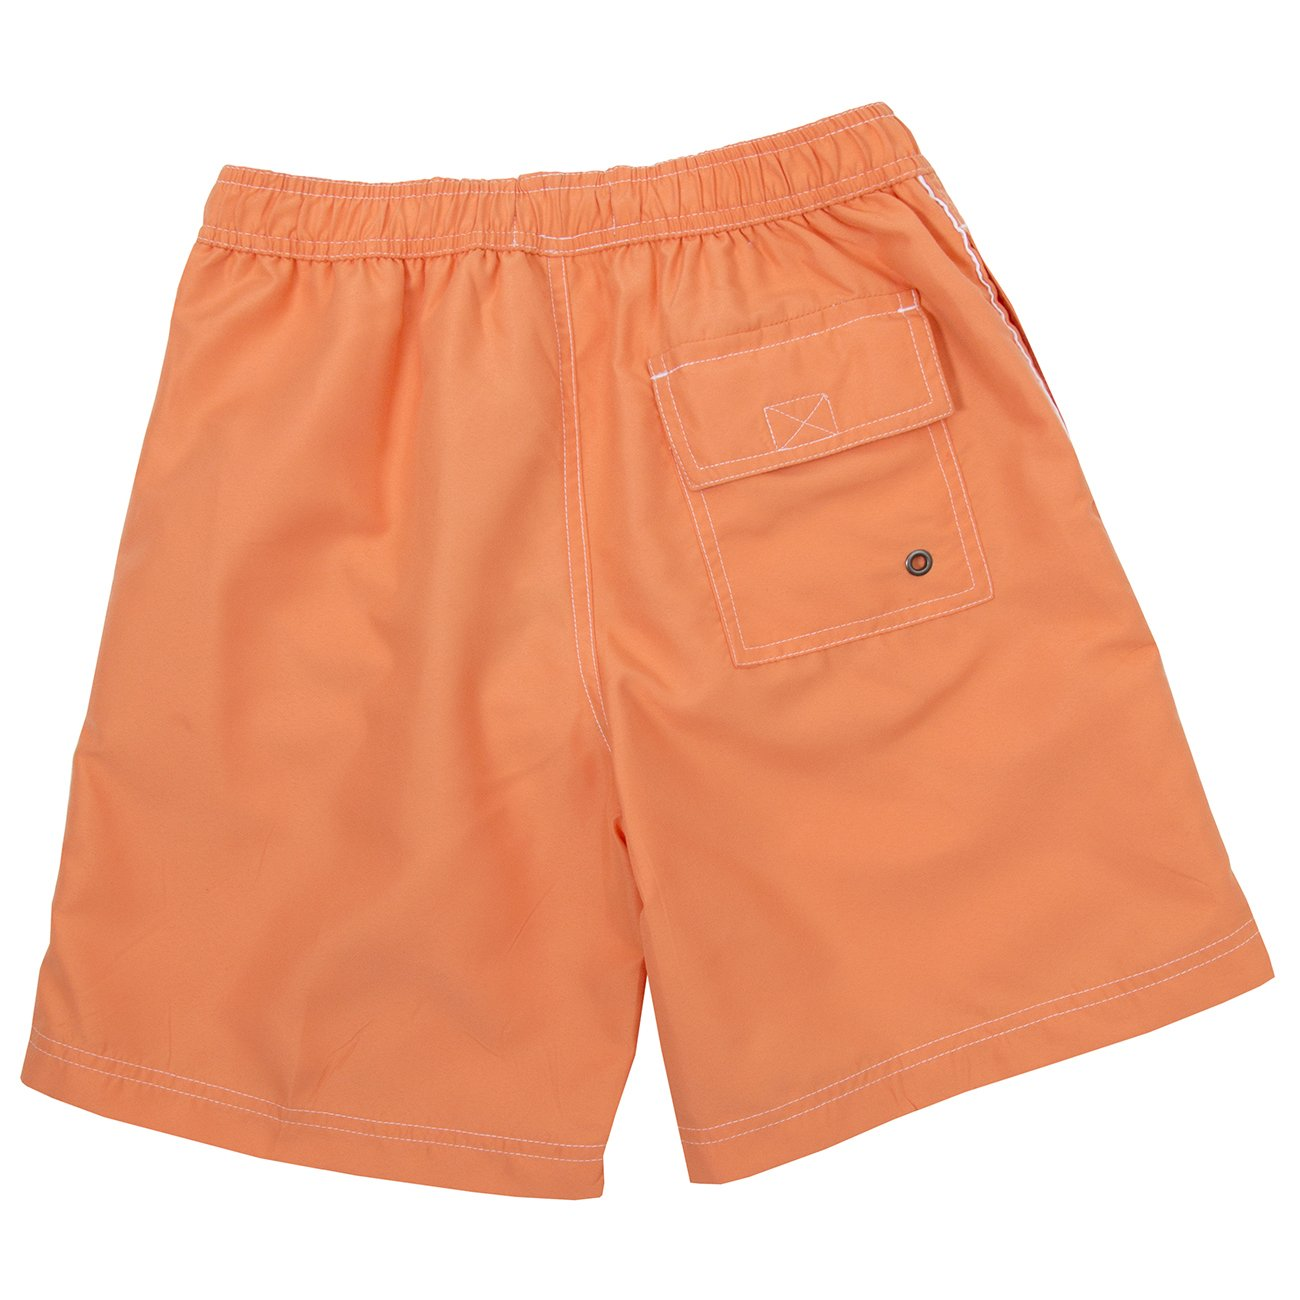 Cargo Bay Boys Swim Shorts with Piping Detail